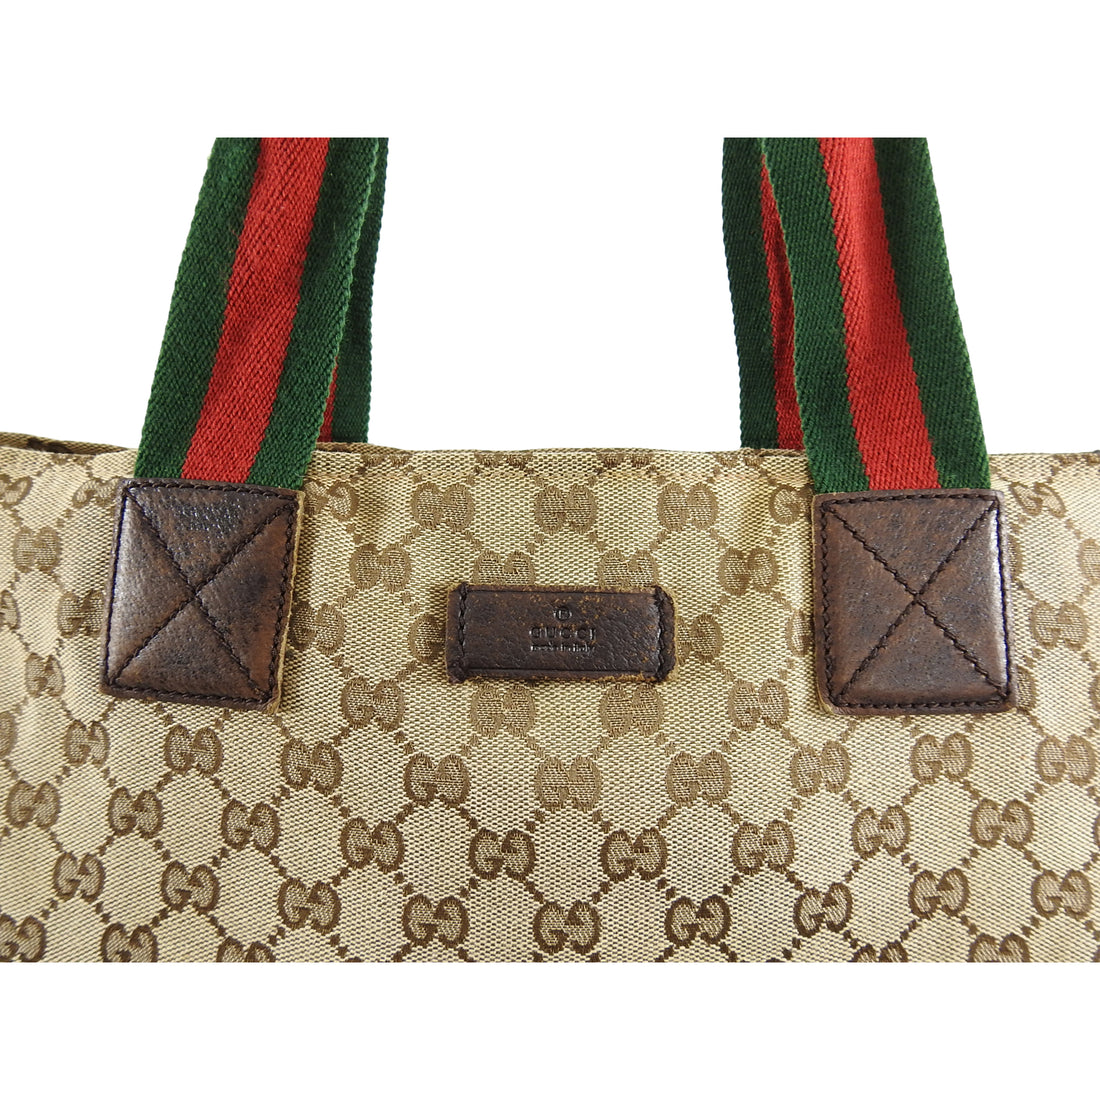 Gucci Monogram Canvas Brown Shopping Tote Bag